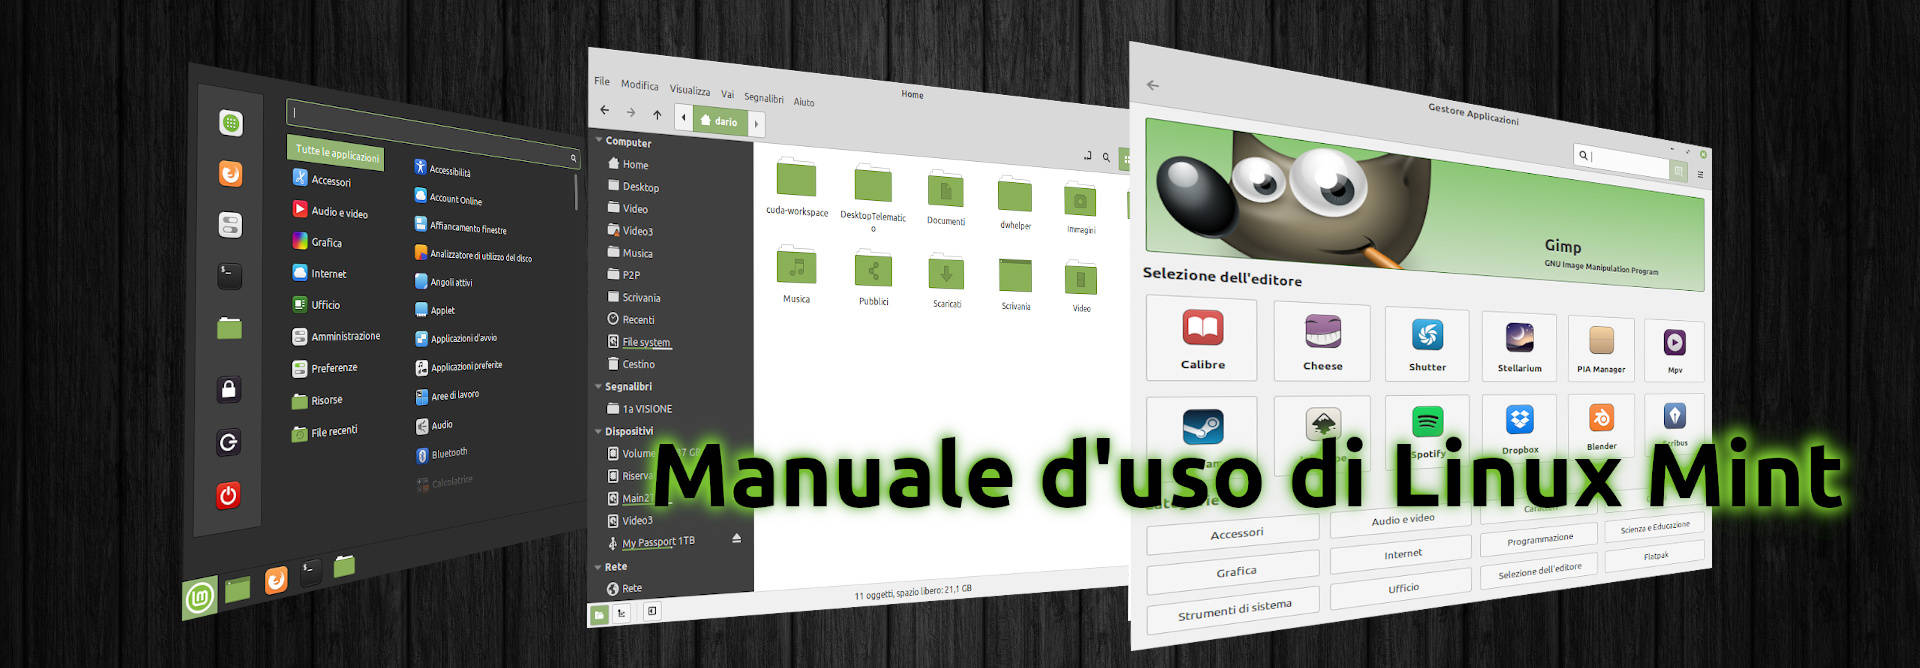 manuale linux mint